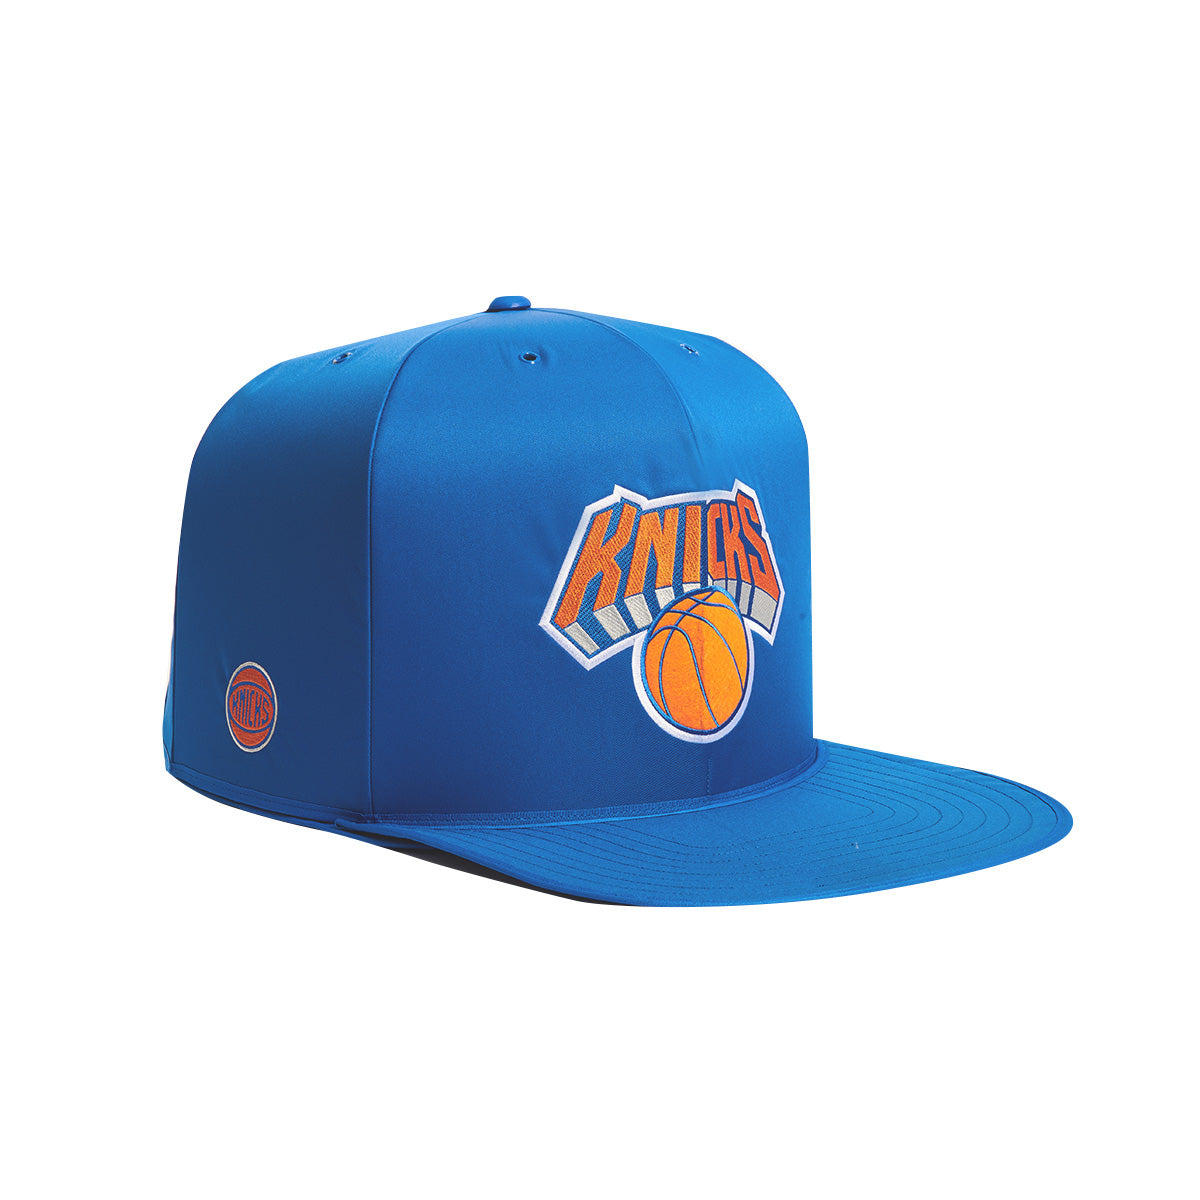 Nap Cap - NBA - New York Knicks - Pet Bed